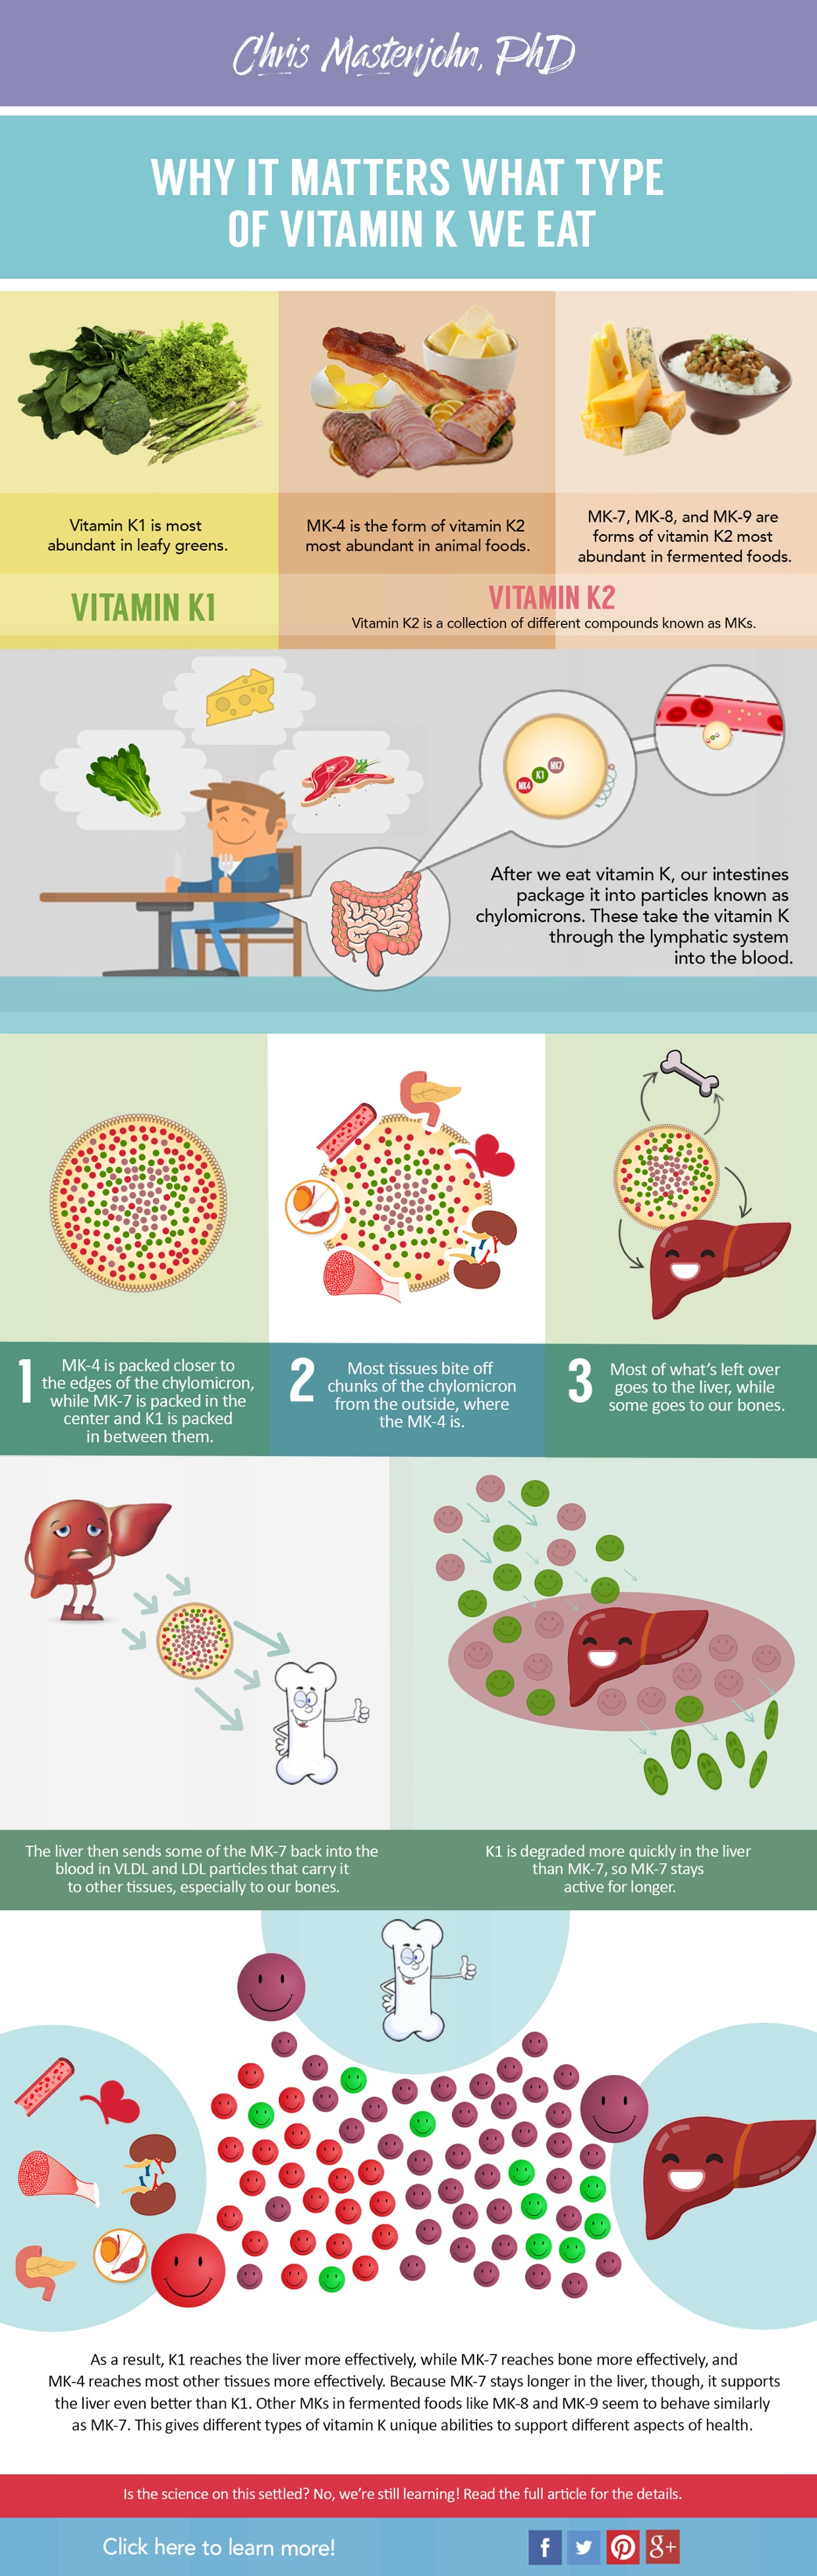 Why It Matters What Type Of Vitamin We Eat